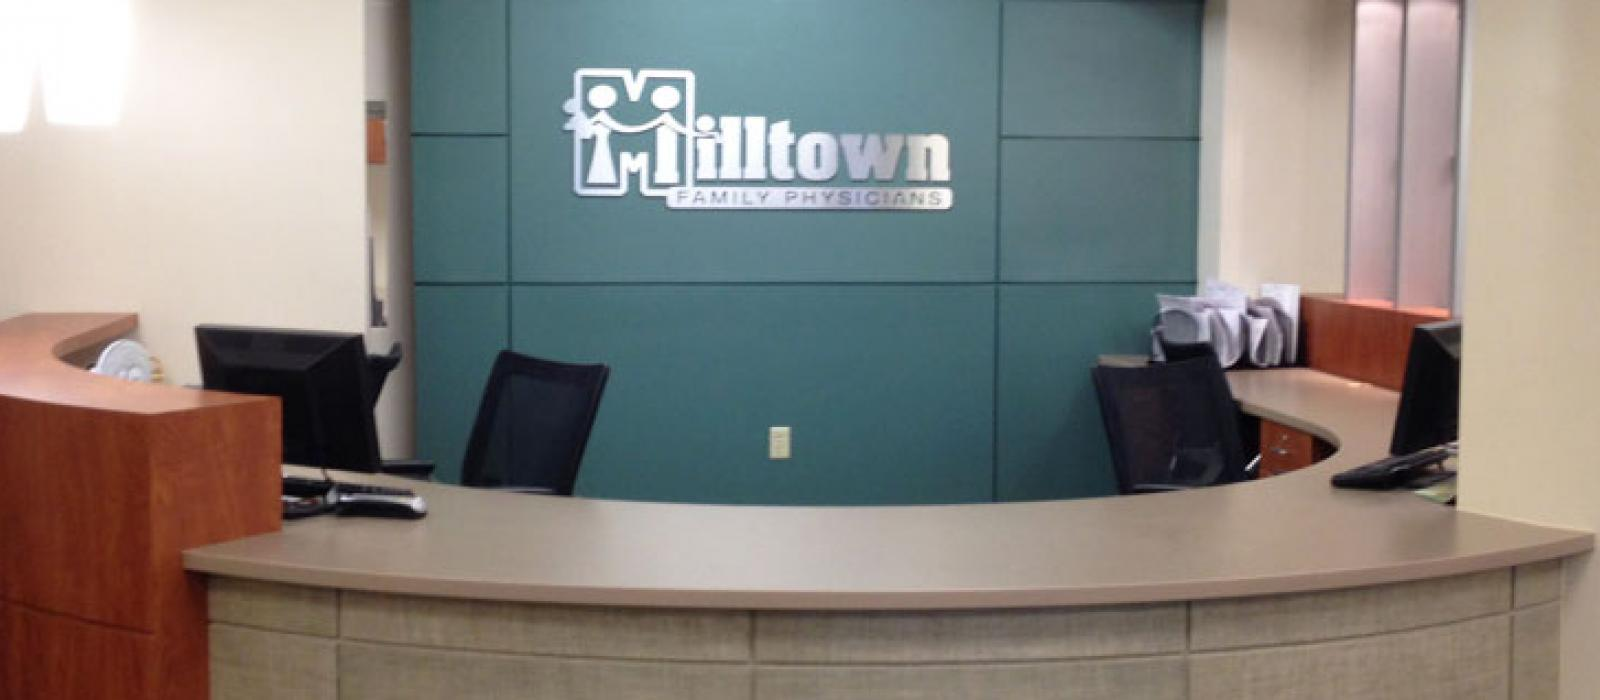 Milltown Family Physicians